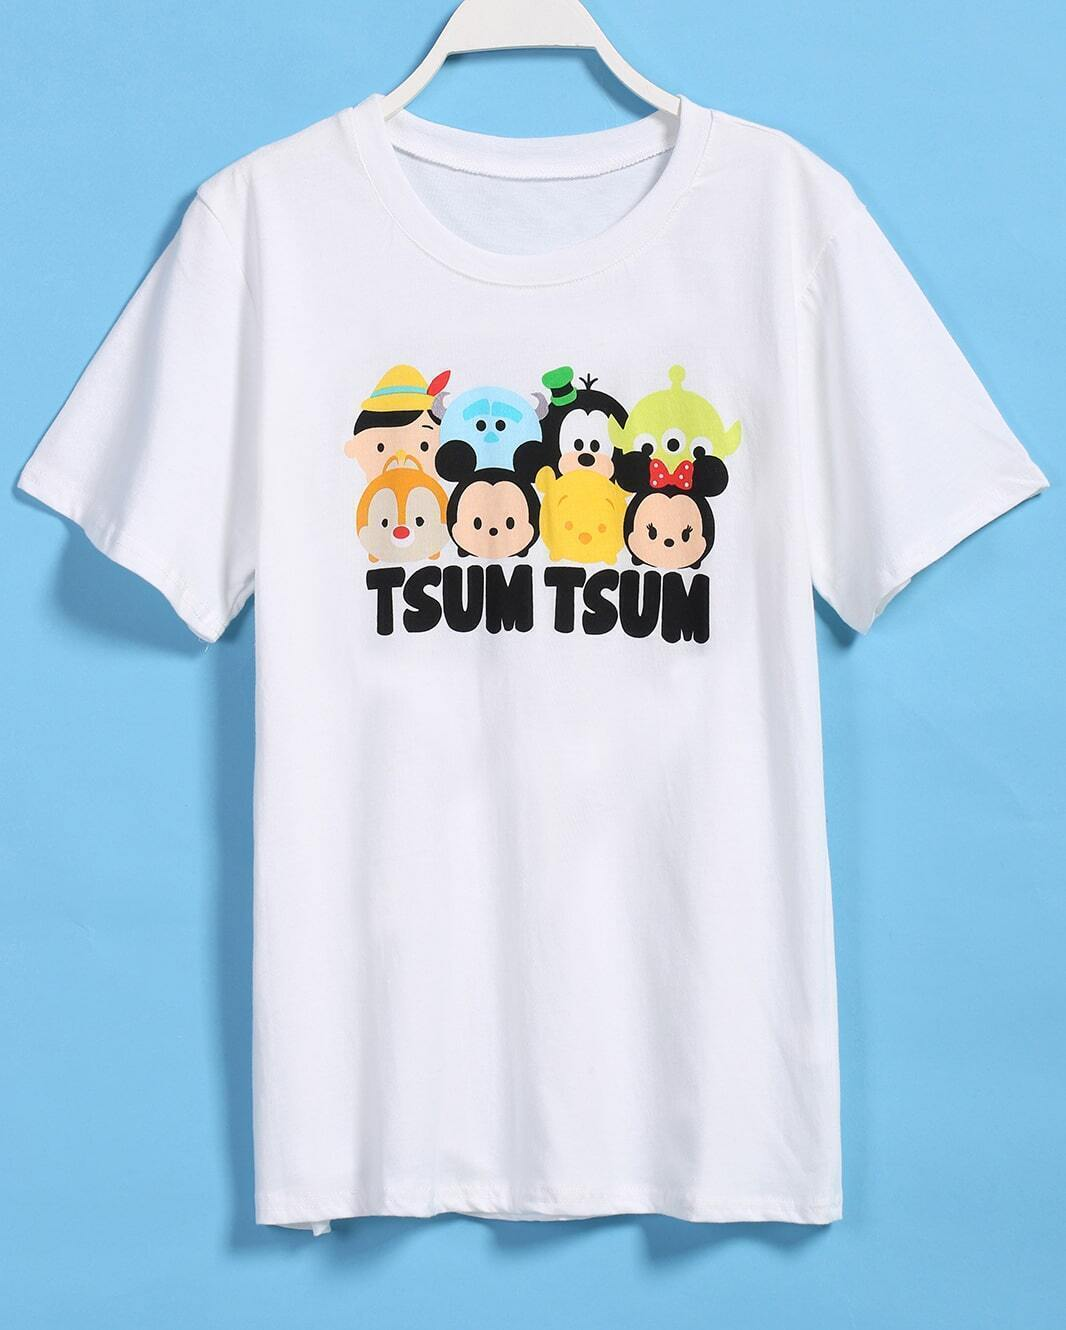 Cartoon tsum print t shirt for Kinkos t shirt printing